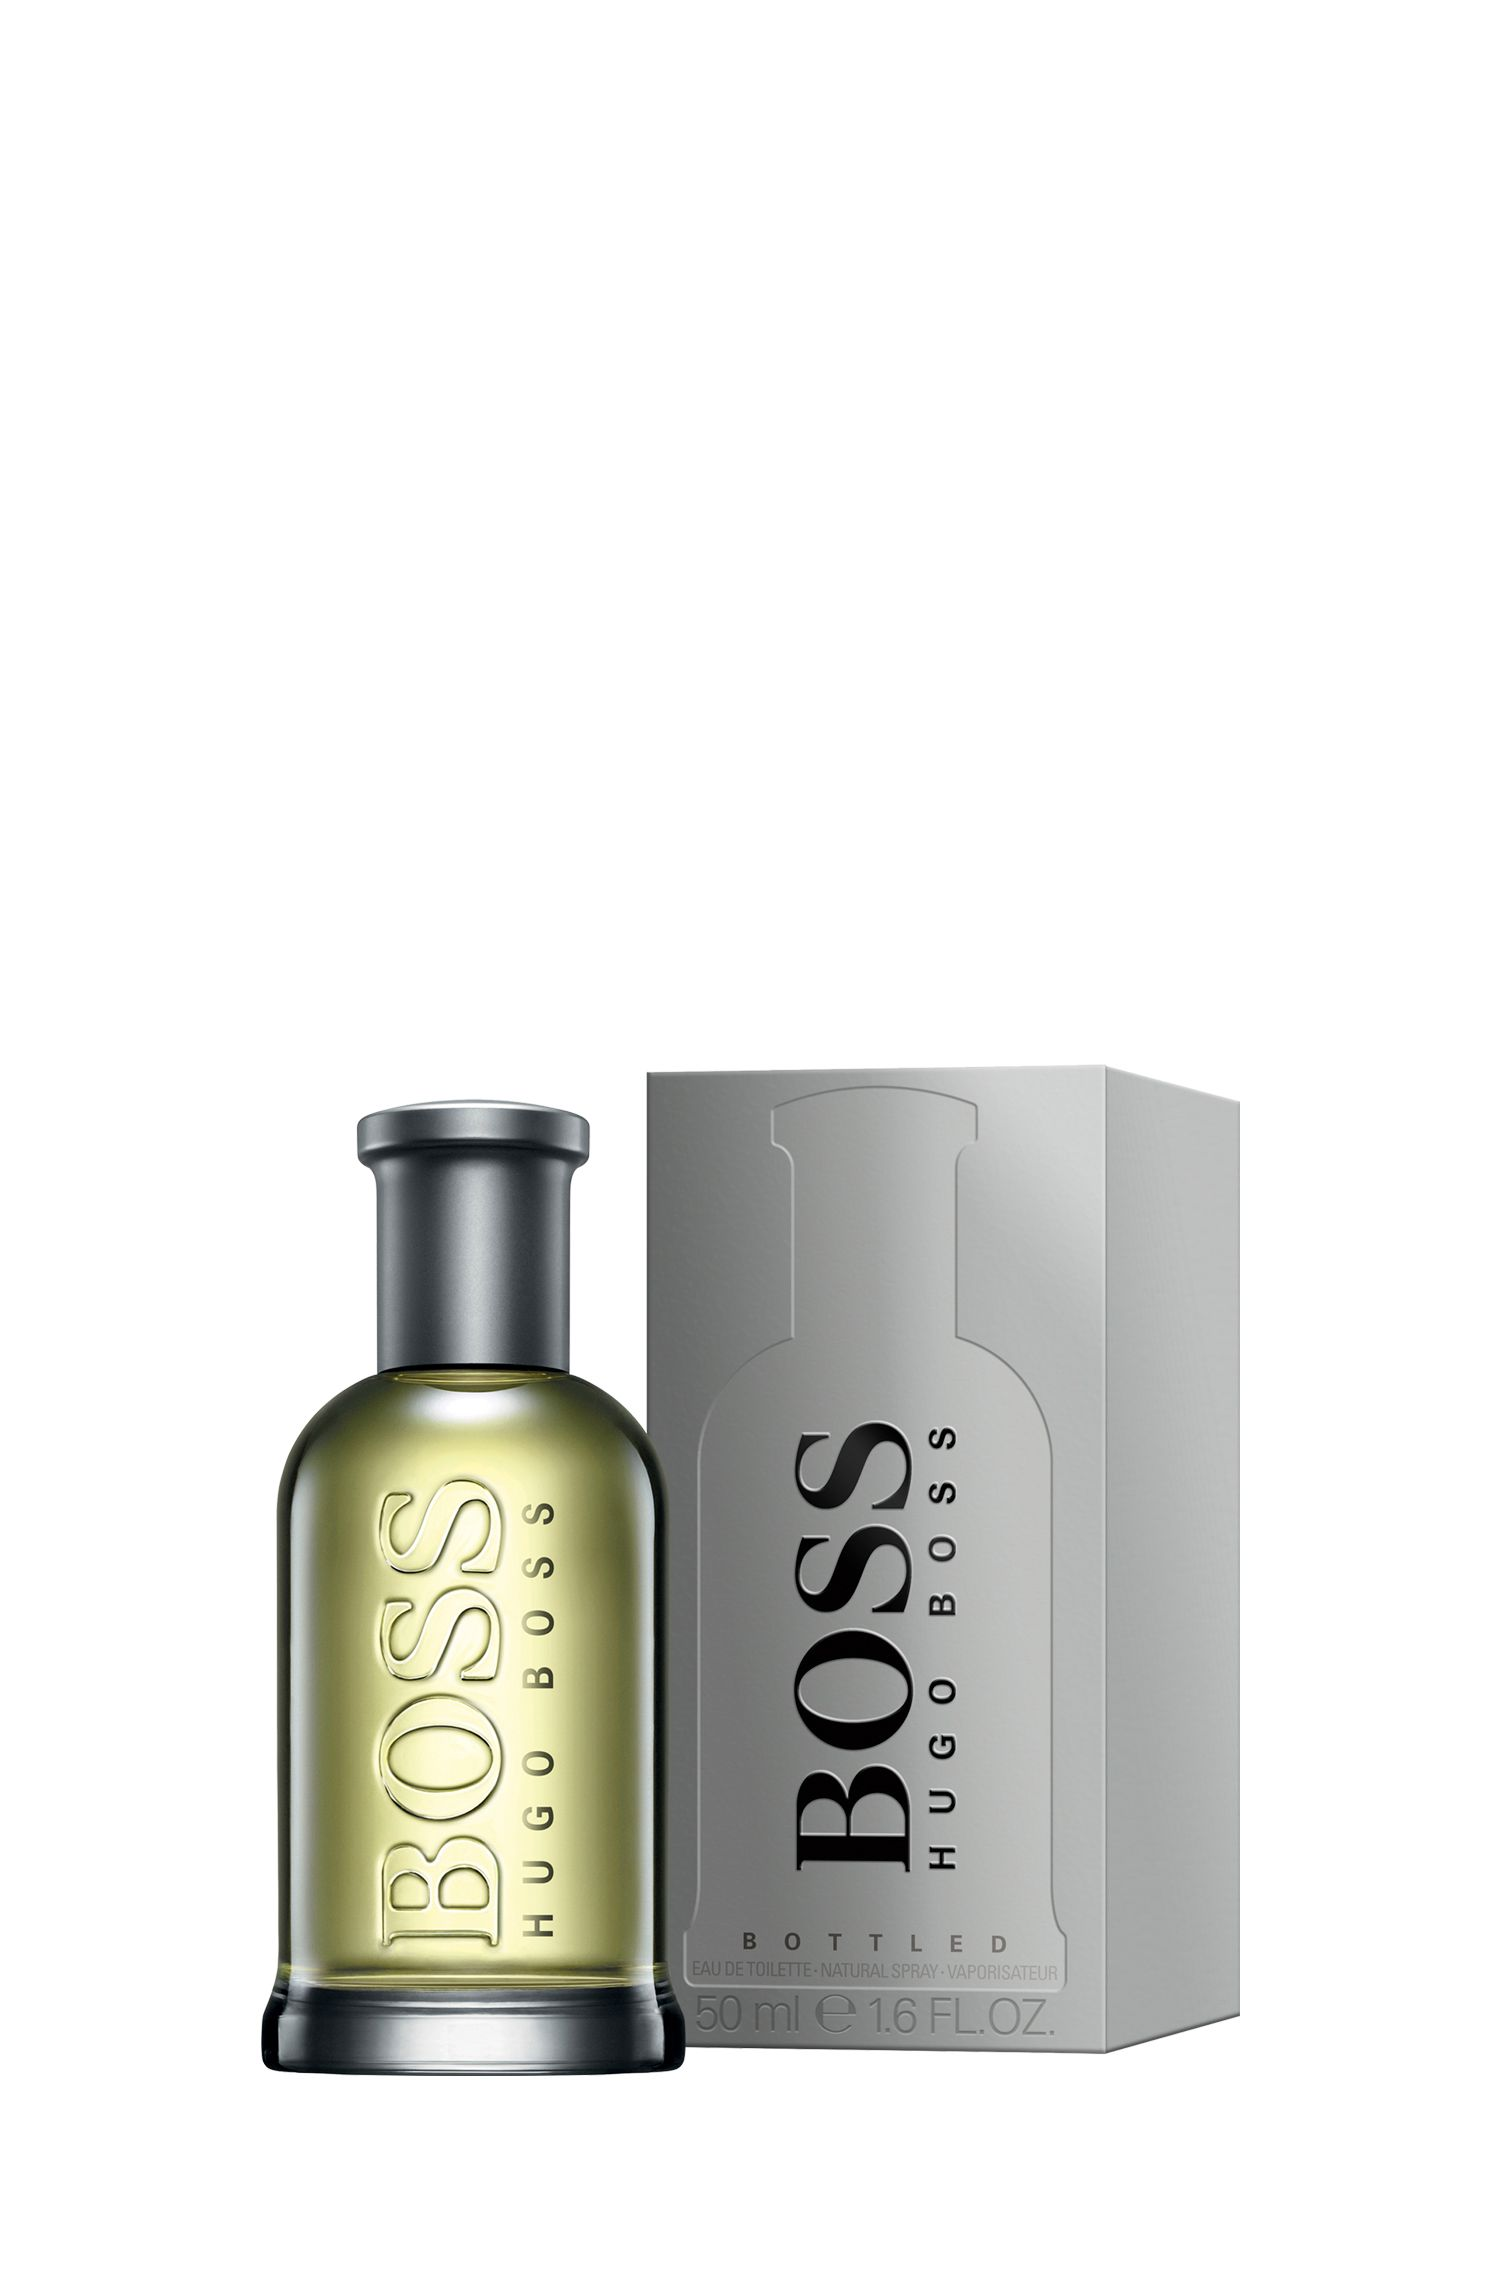 BOSS Bottled Eau de Toilette 50 ml, Assorted-Pre-Pack